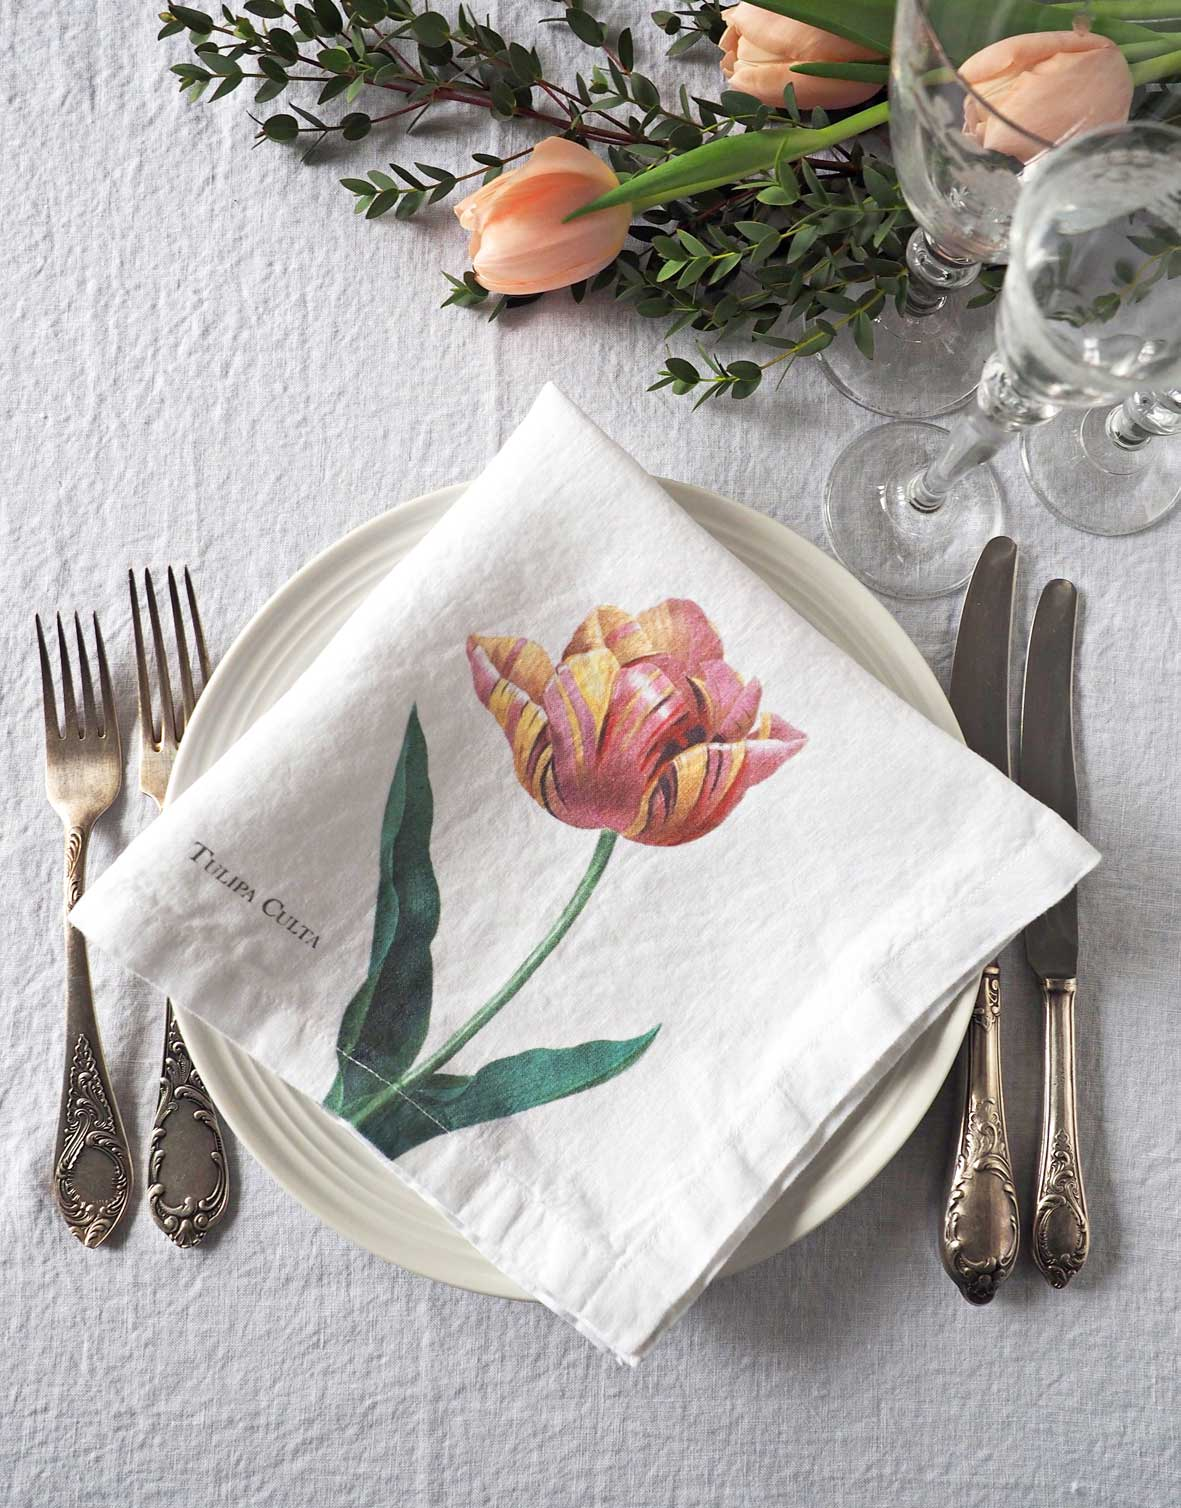 Pink Flower Linen Napkins from Linoroom